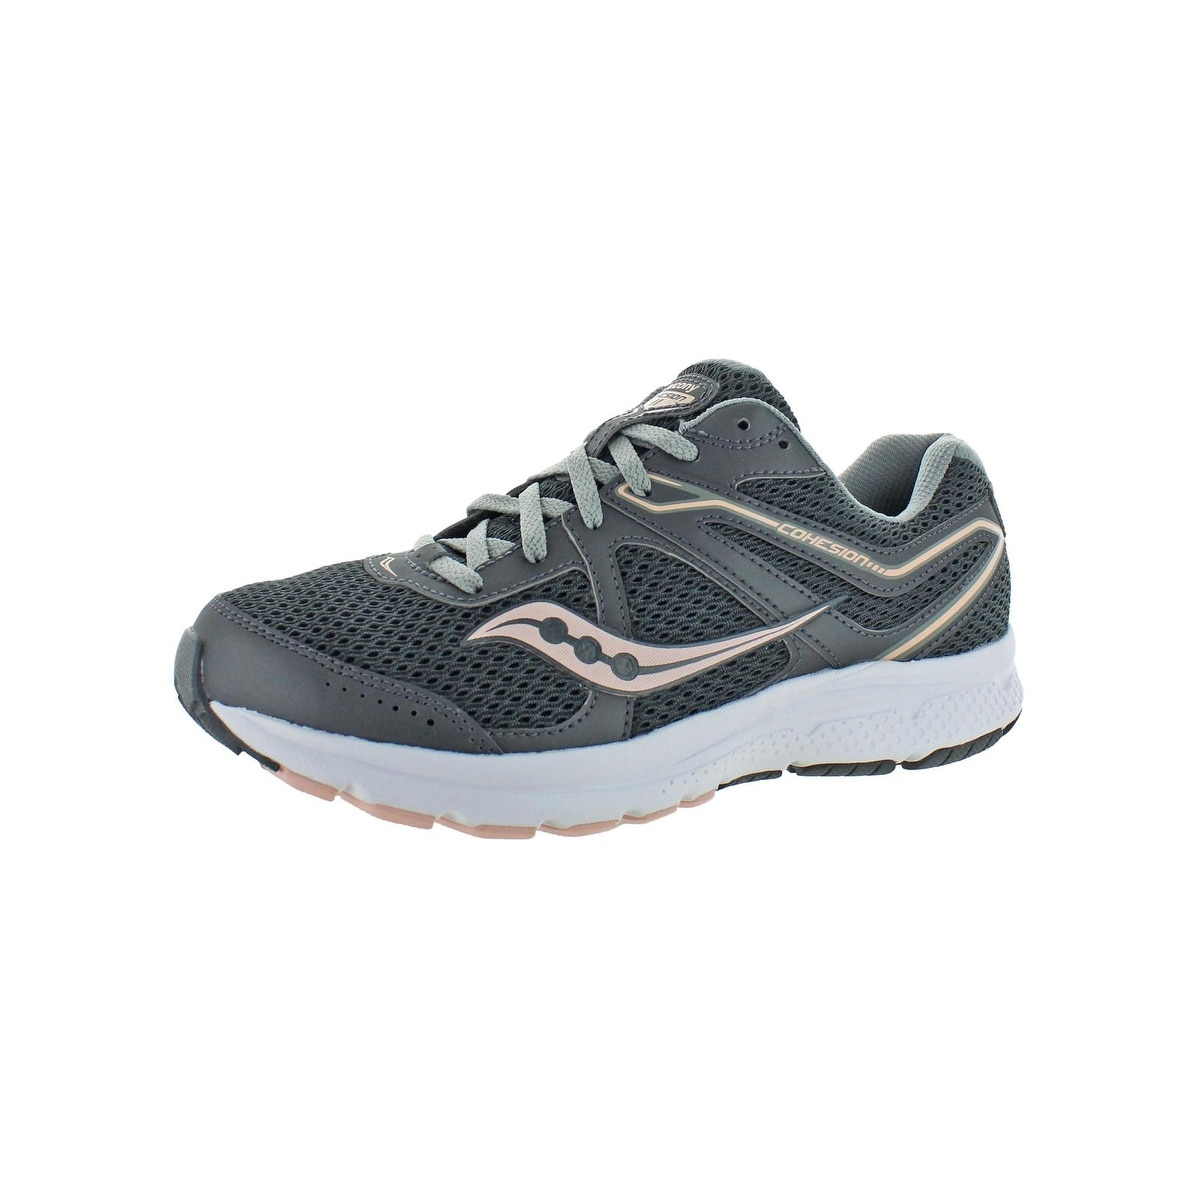 Buy Wide Saucony Women's Athletic Shoes